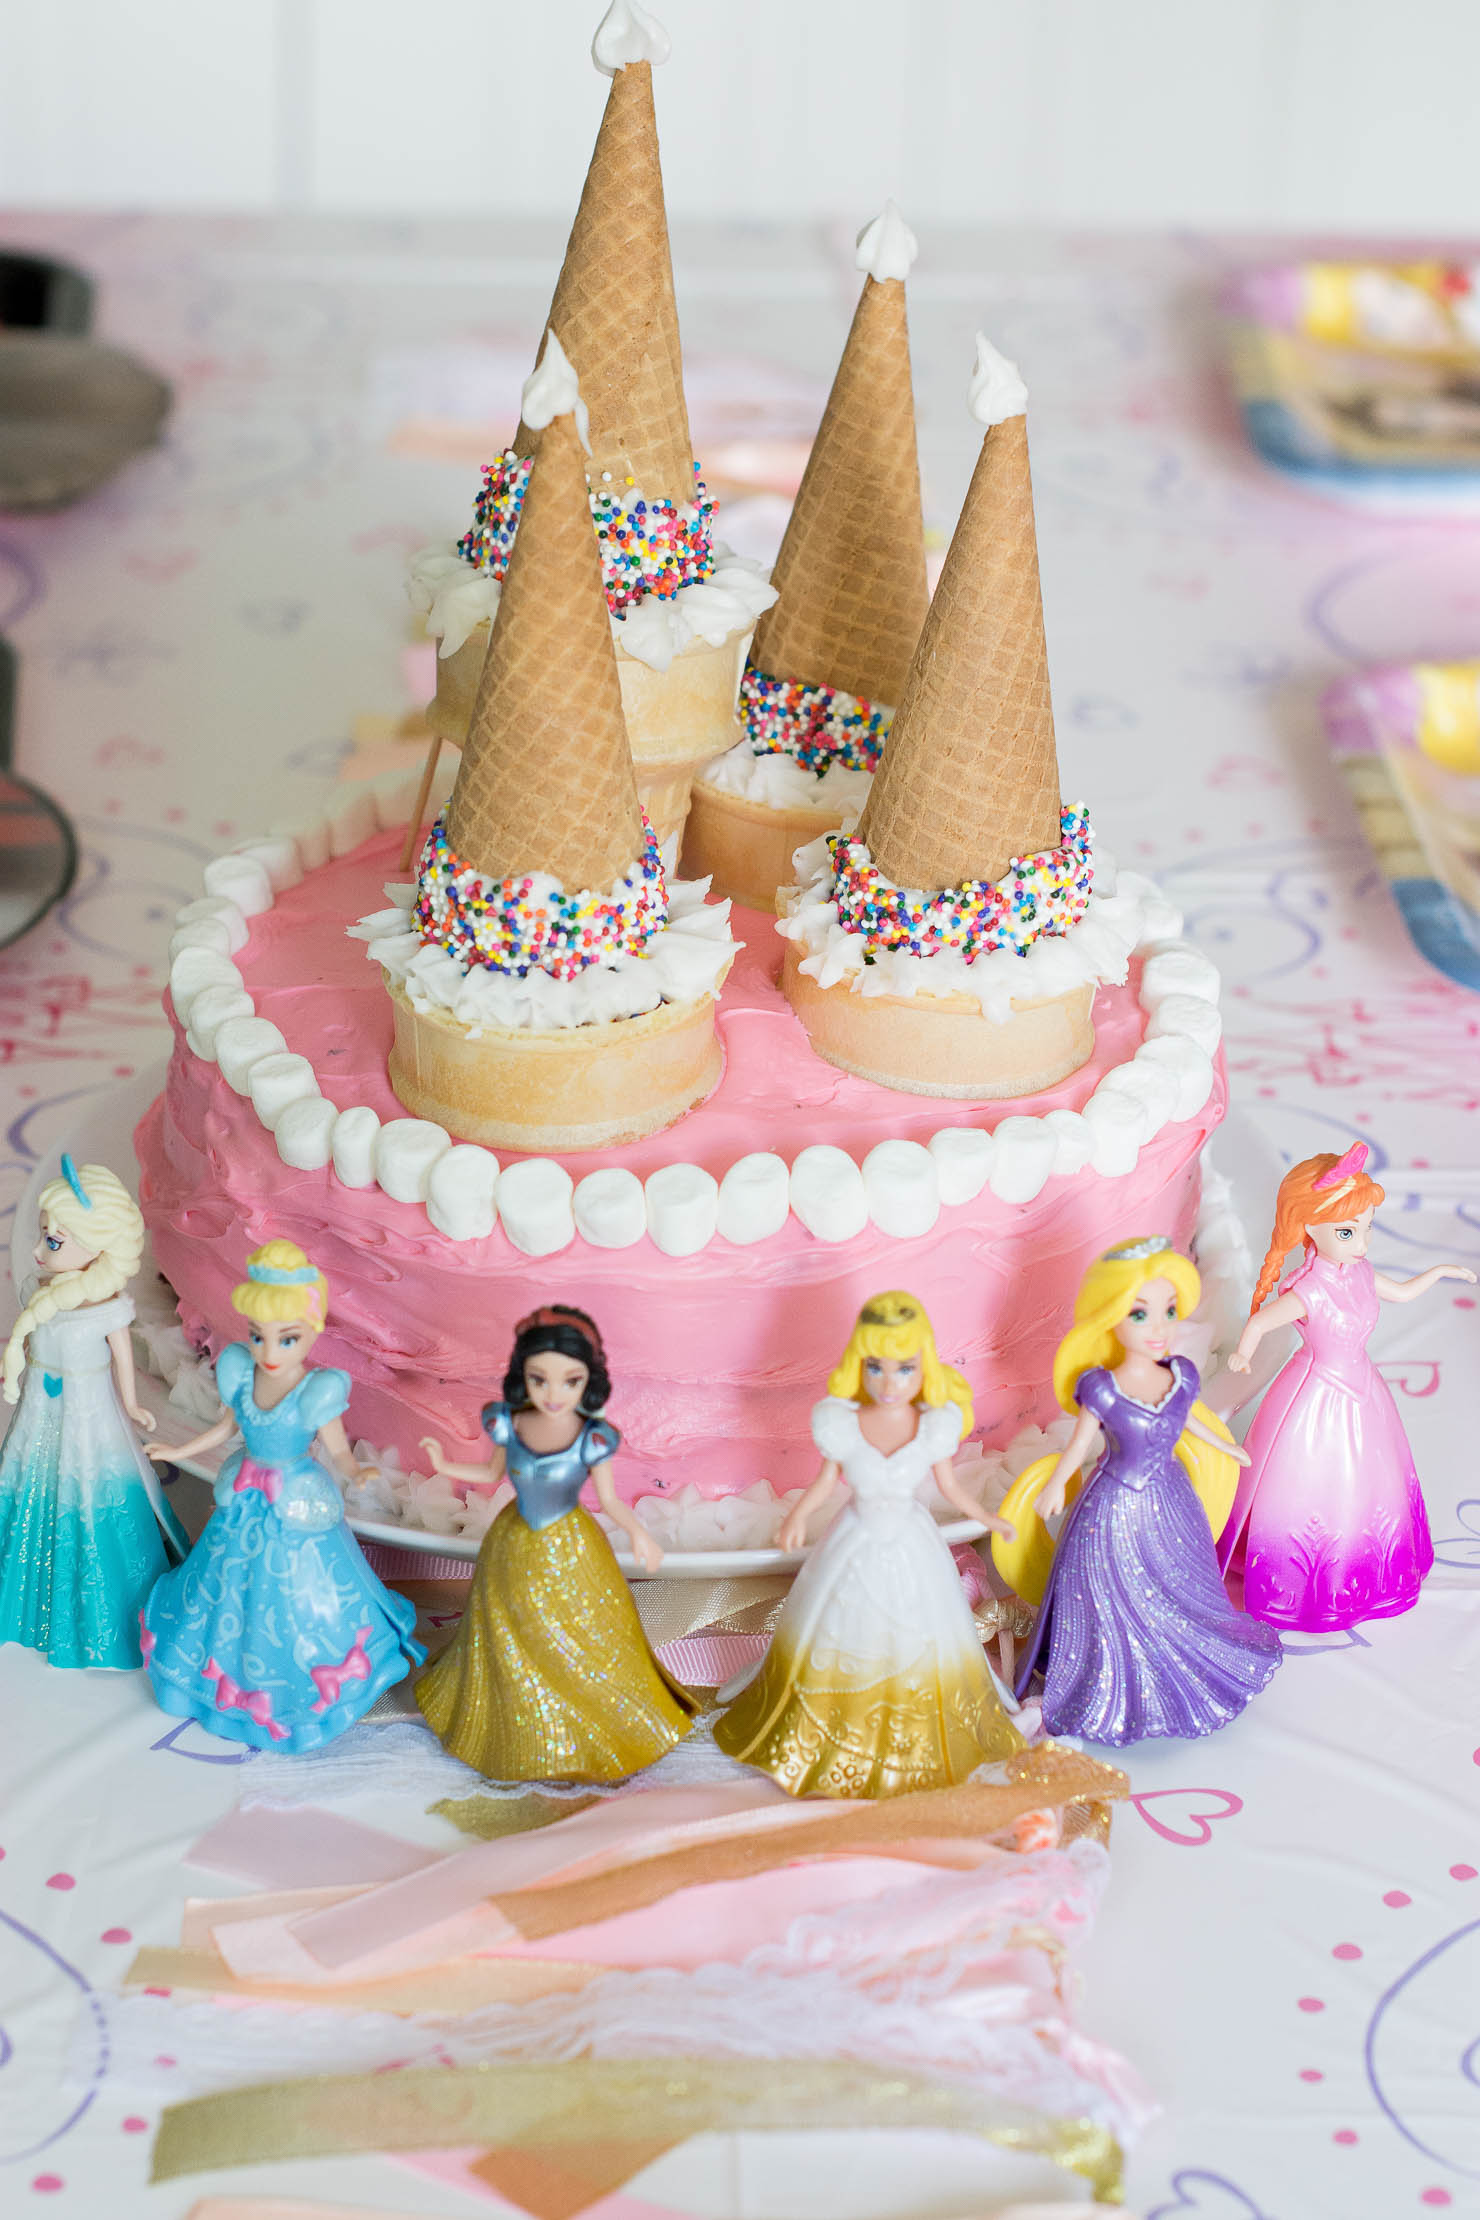 An Easy Princess Cake For Your Little Princess Wishes